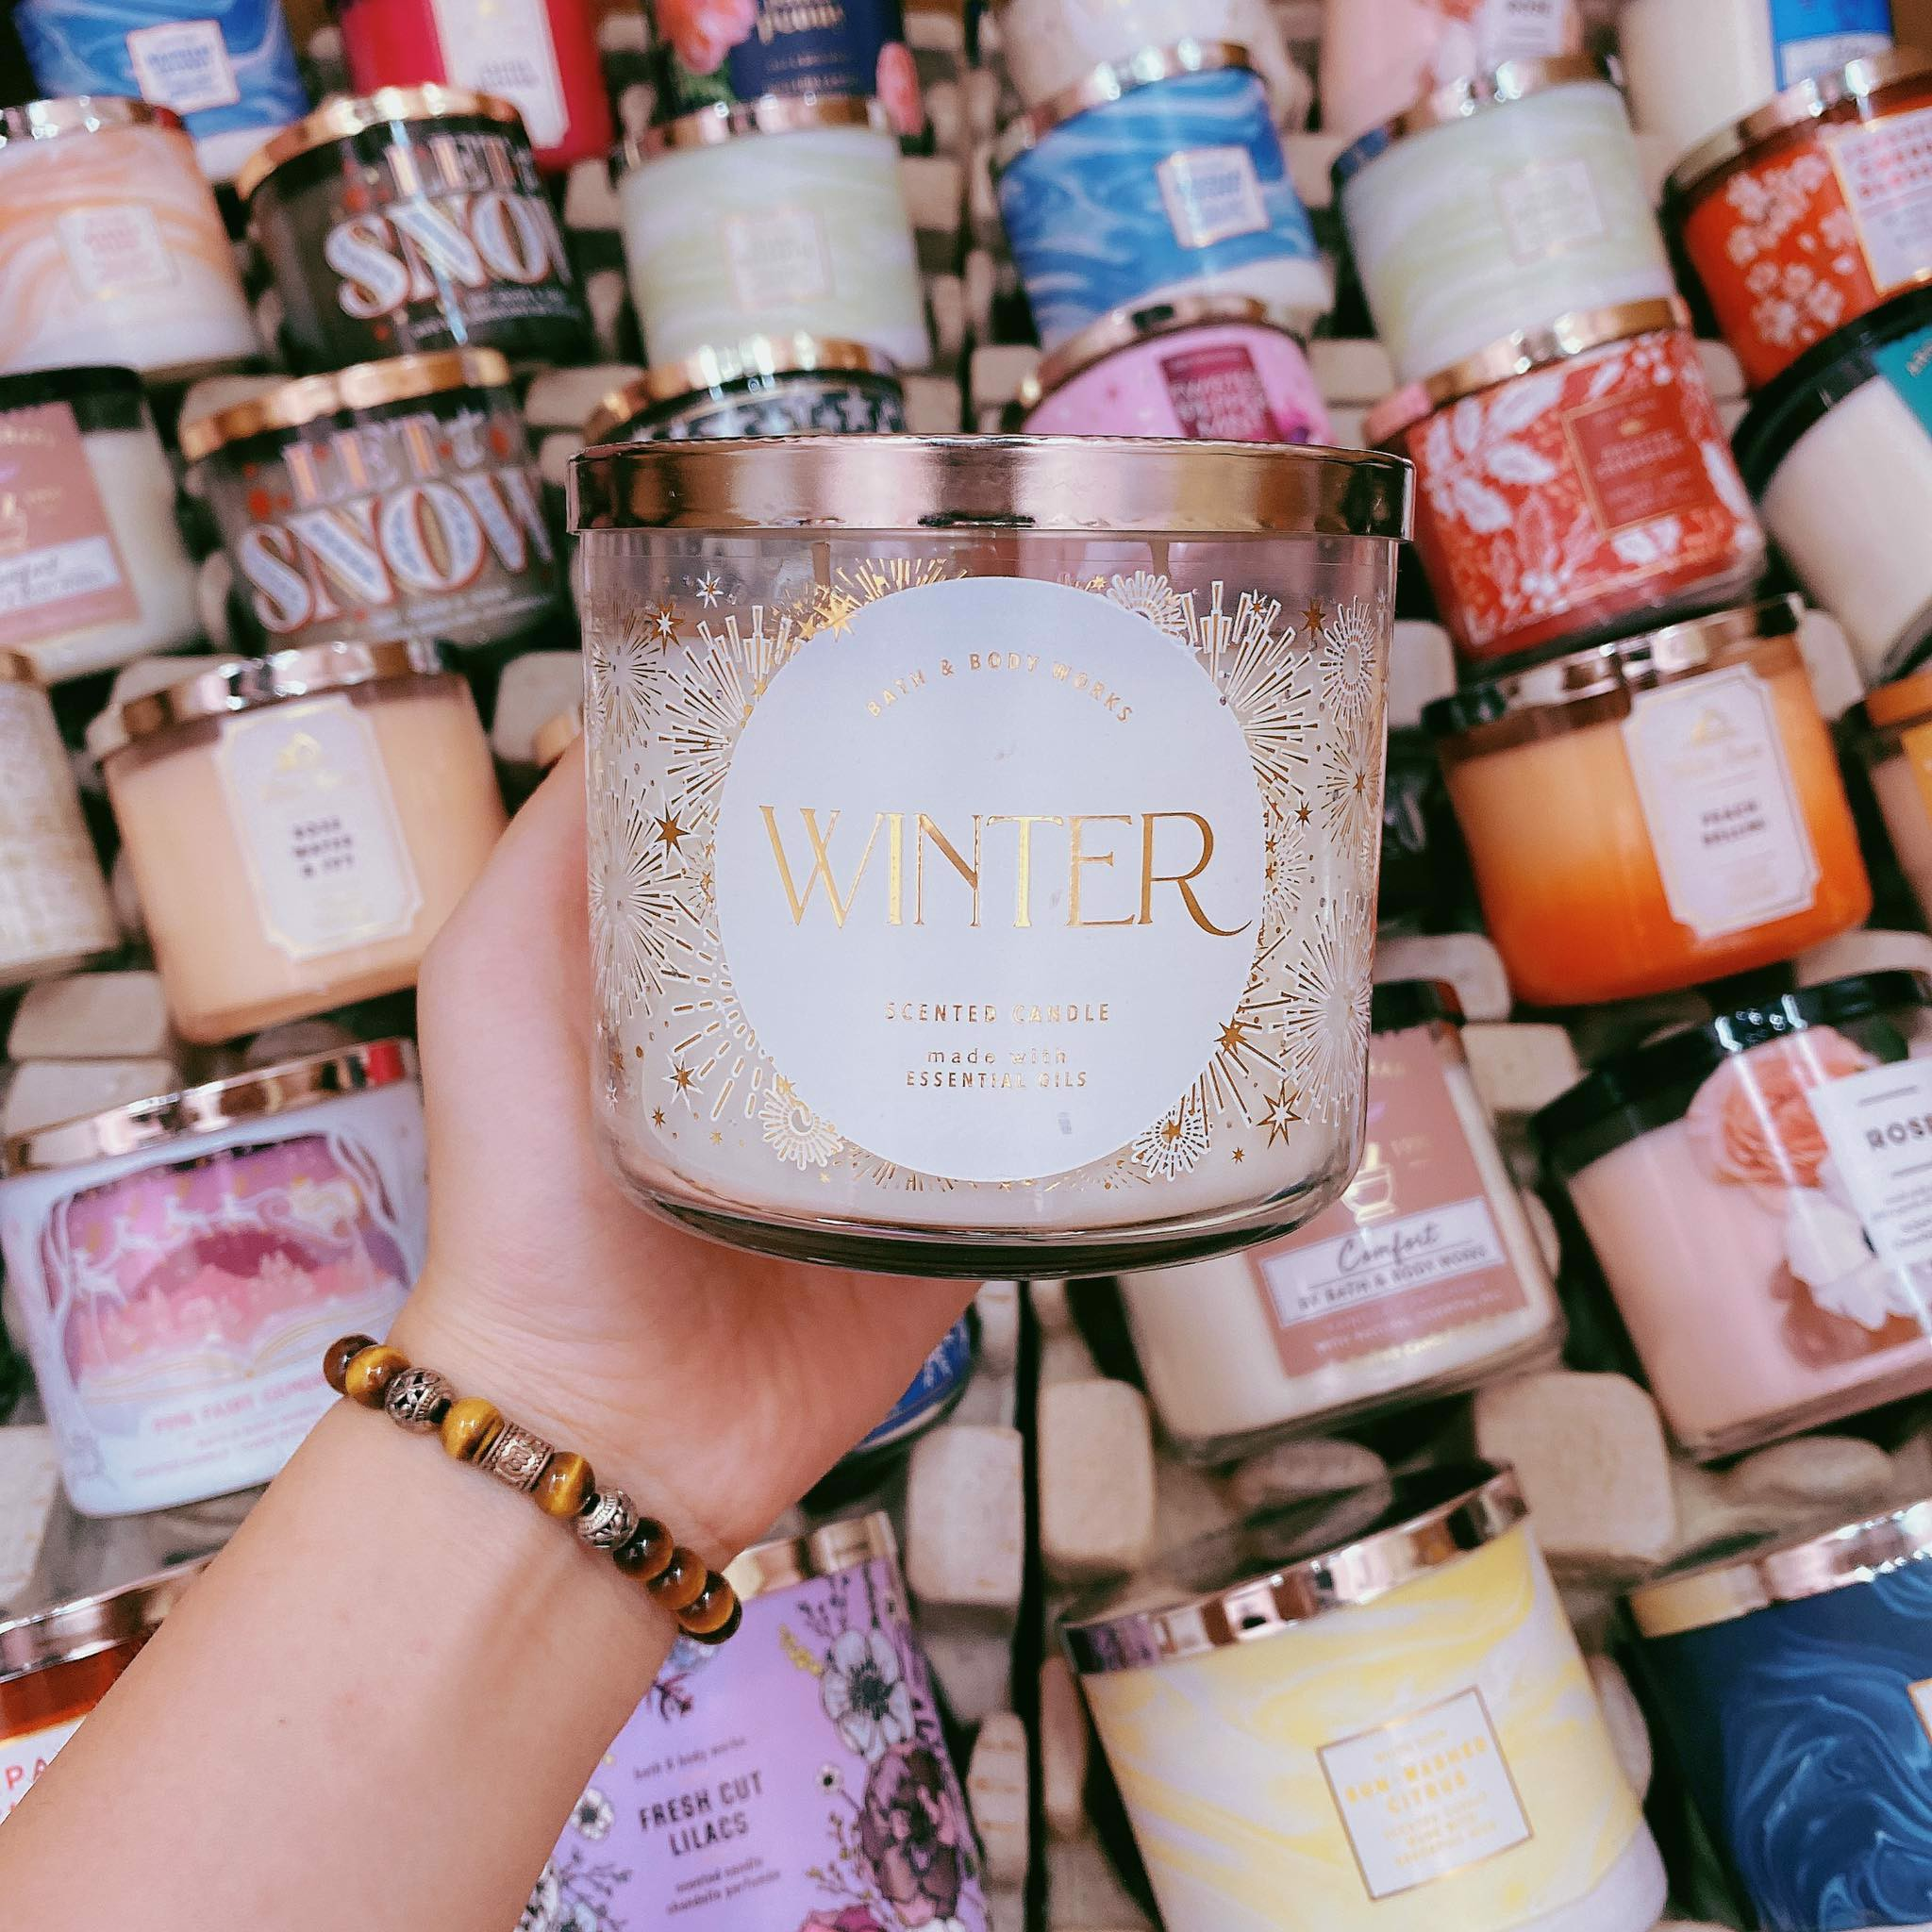 Nến Thơm 3 Bấc Bath & Body Works Winter Scented Candle